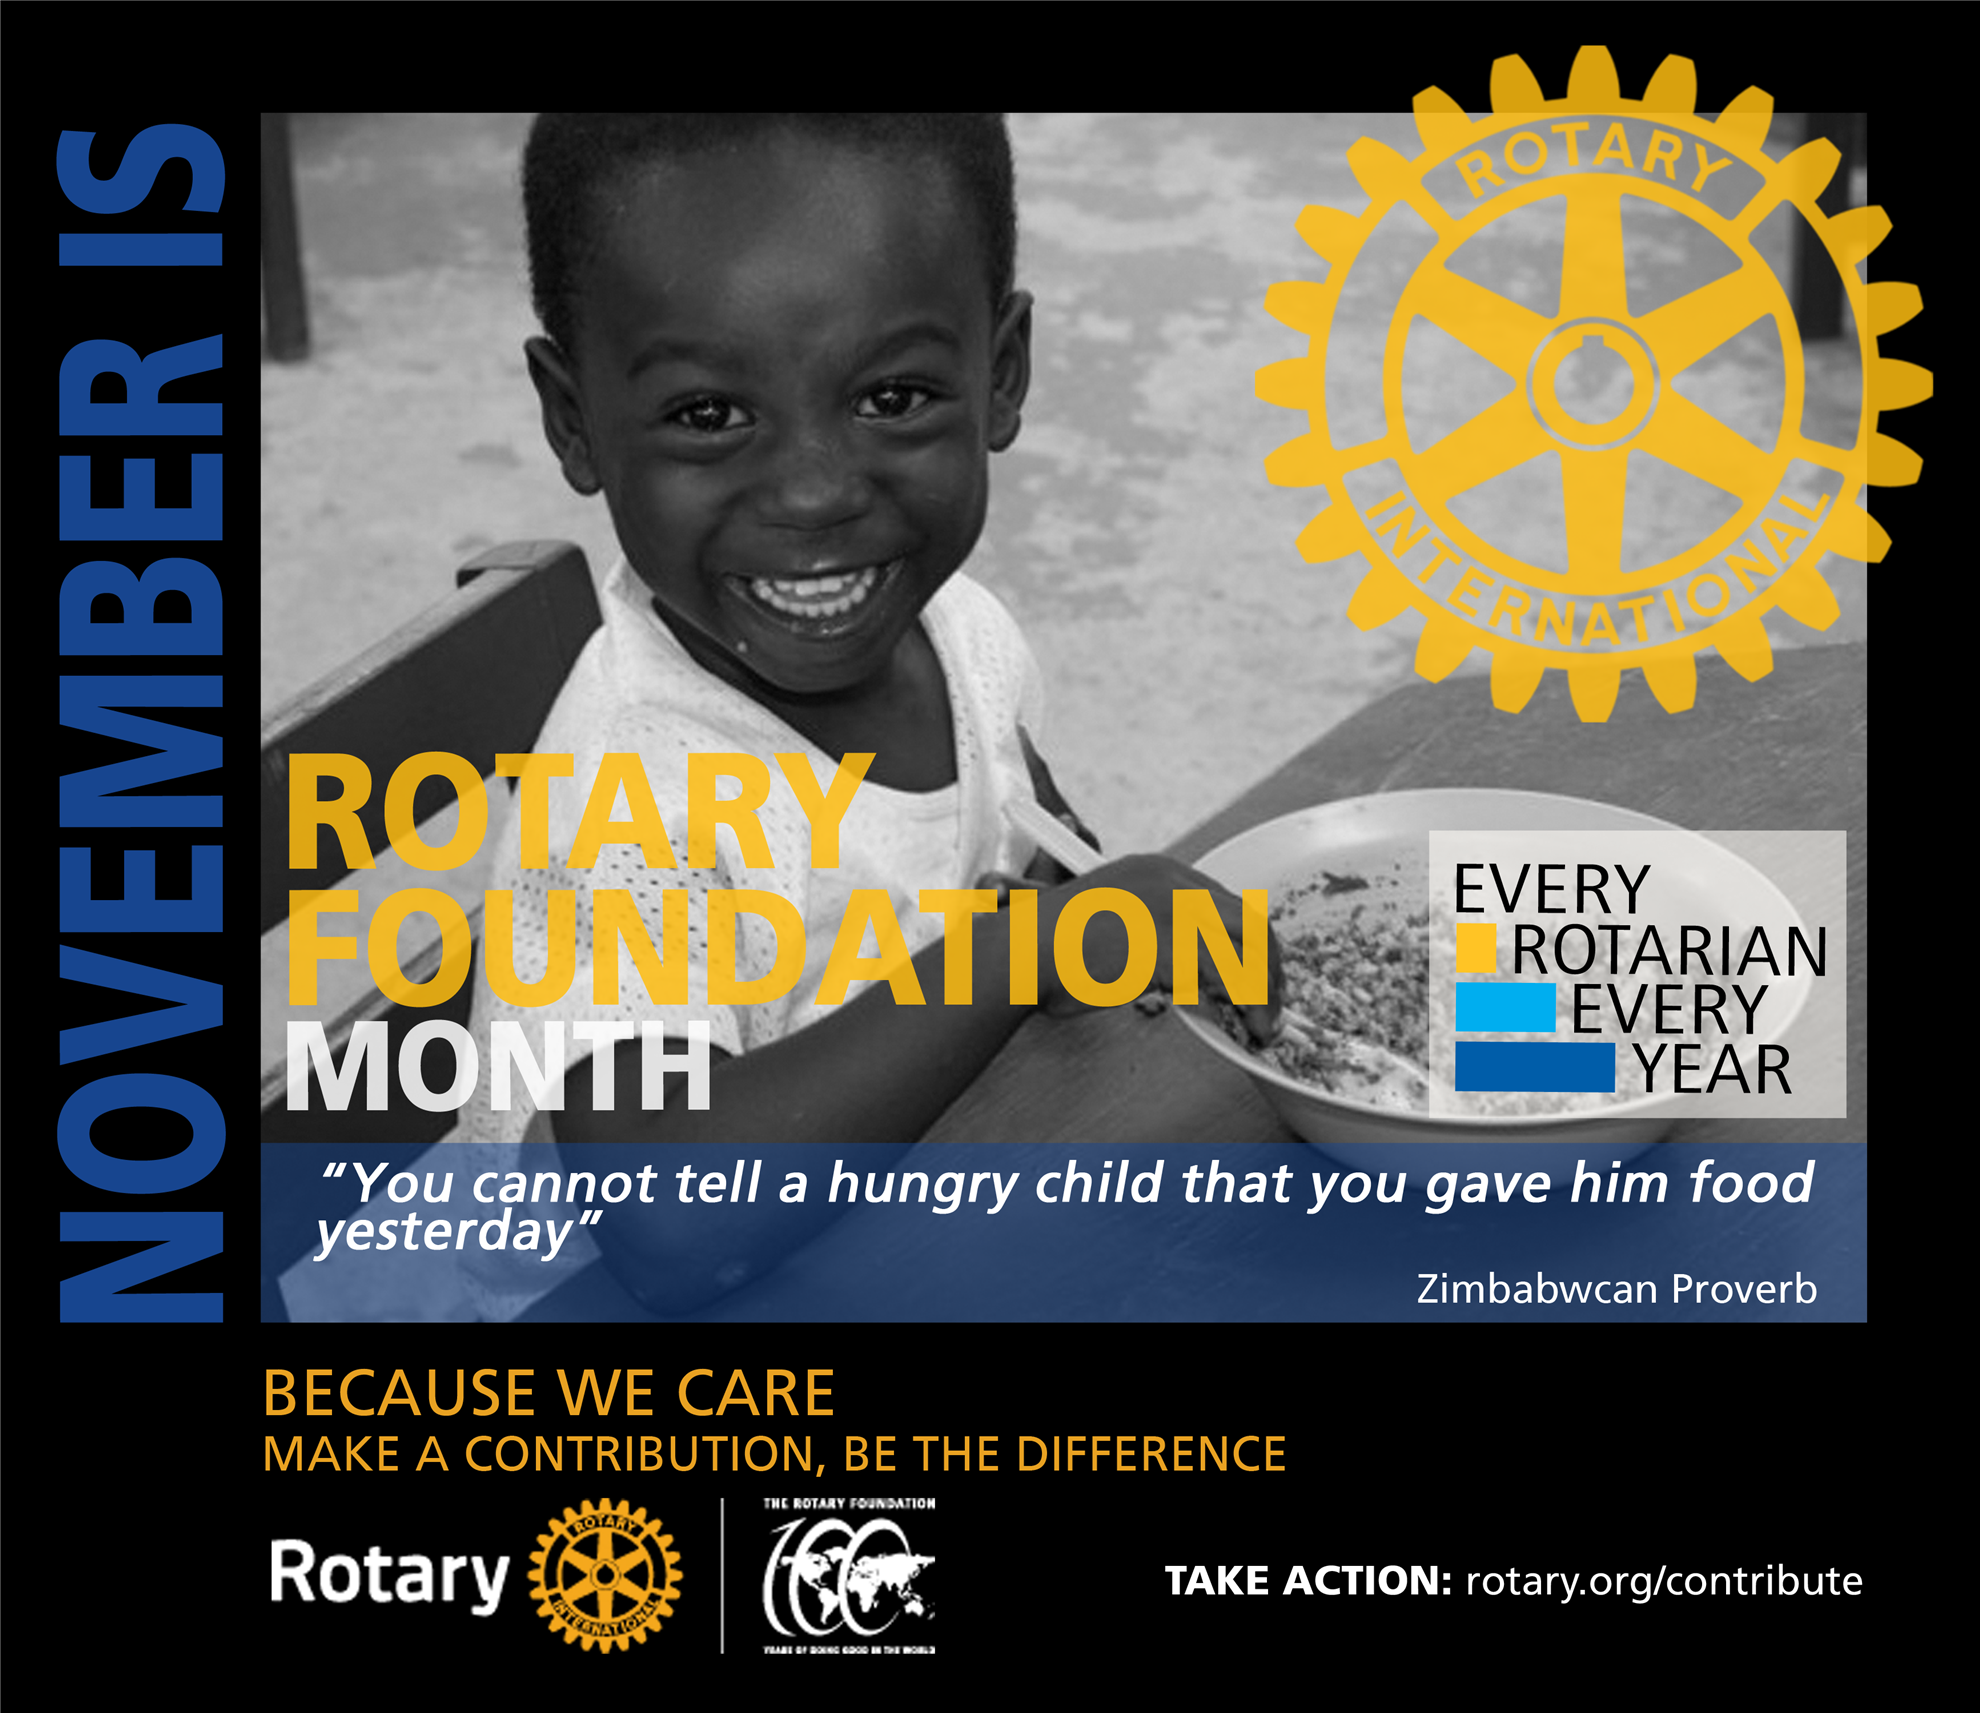 November Rotary Foundation Month